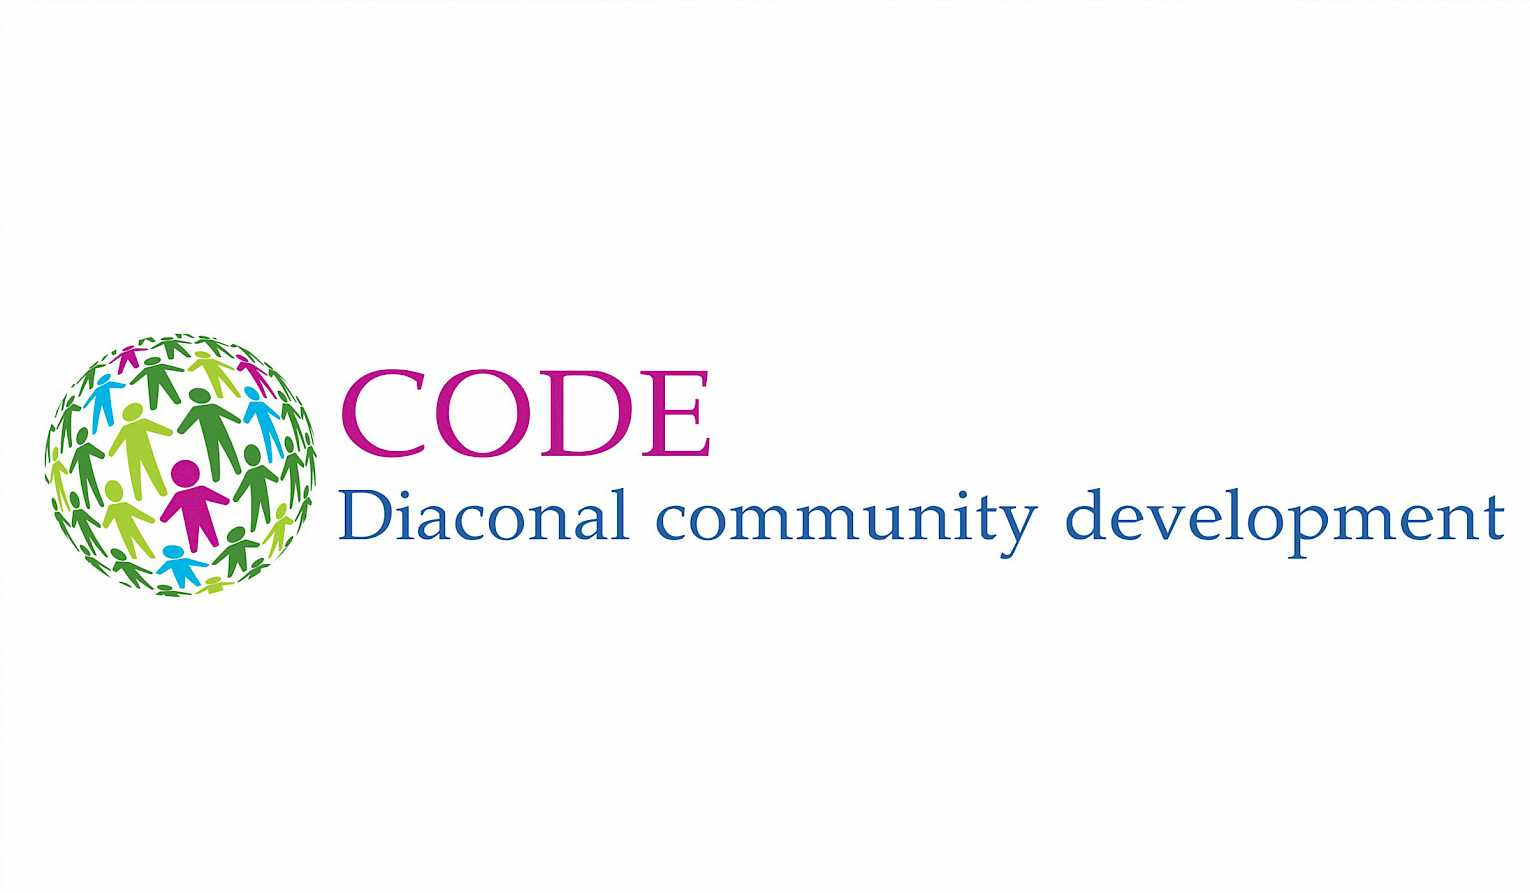 CODE seminar: Gender-mainstreaming in community development- theories and practices